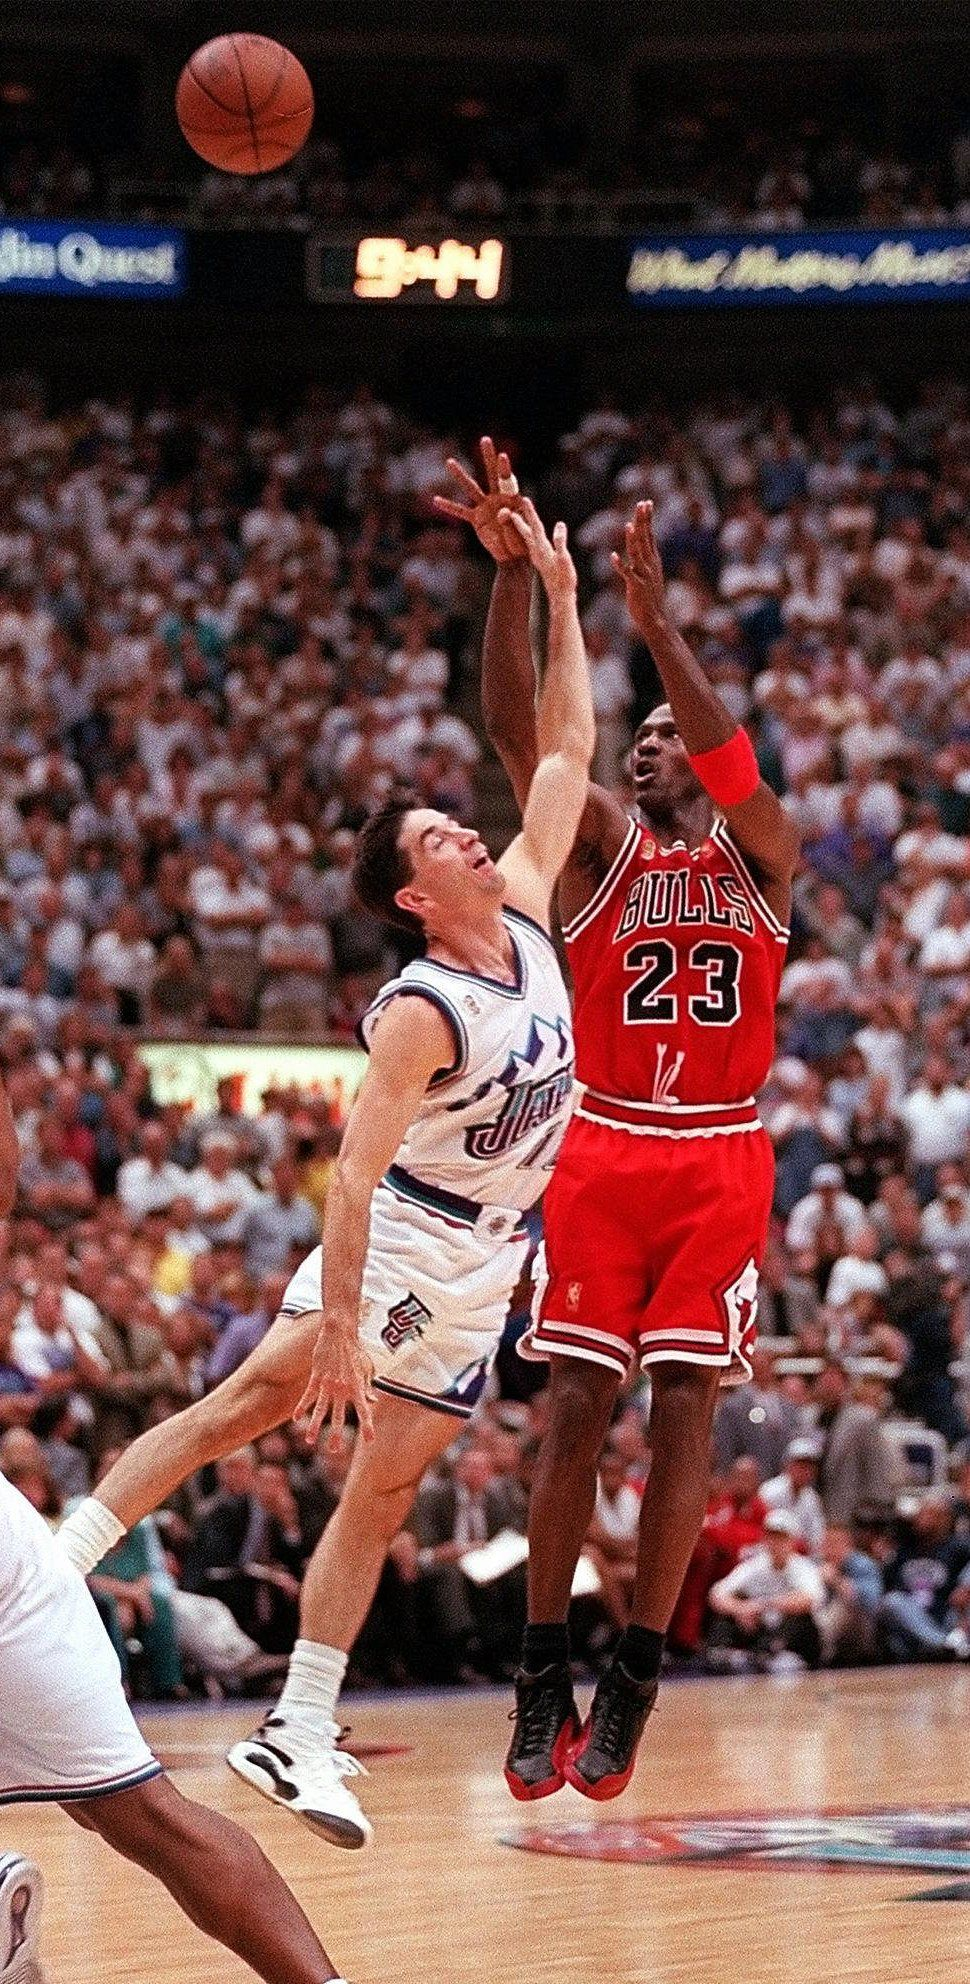 Chicago Bulls Michael Jordan makes his final 3-point shot over the top of  Utah